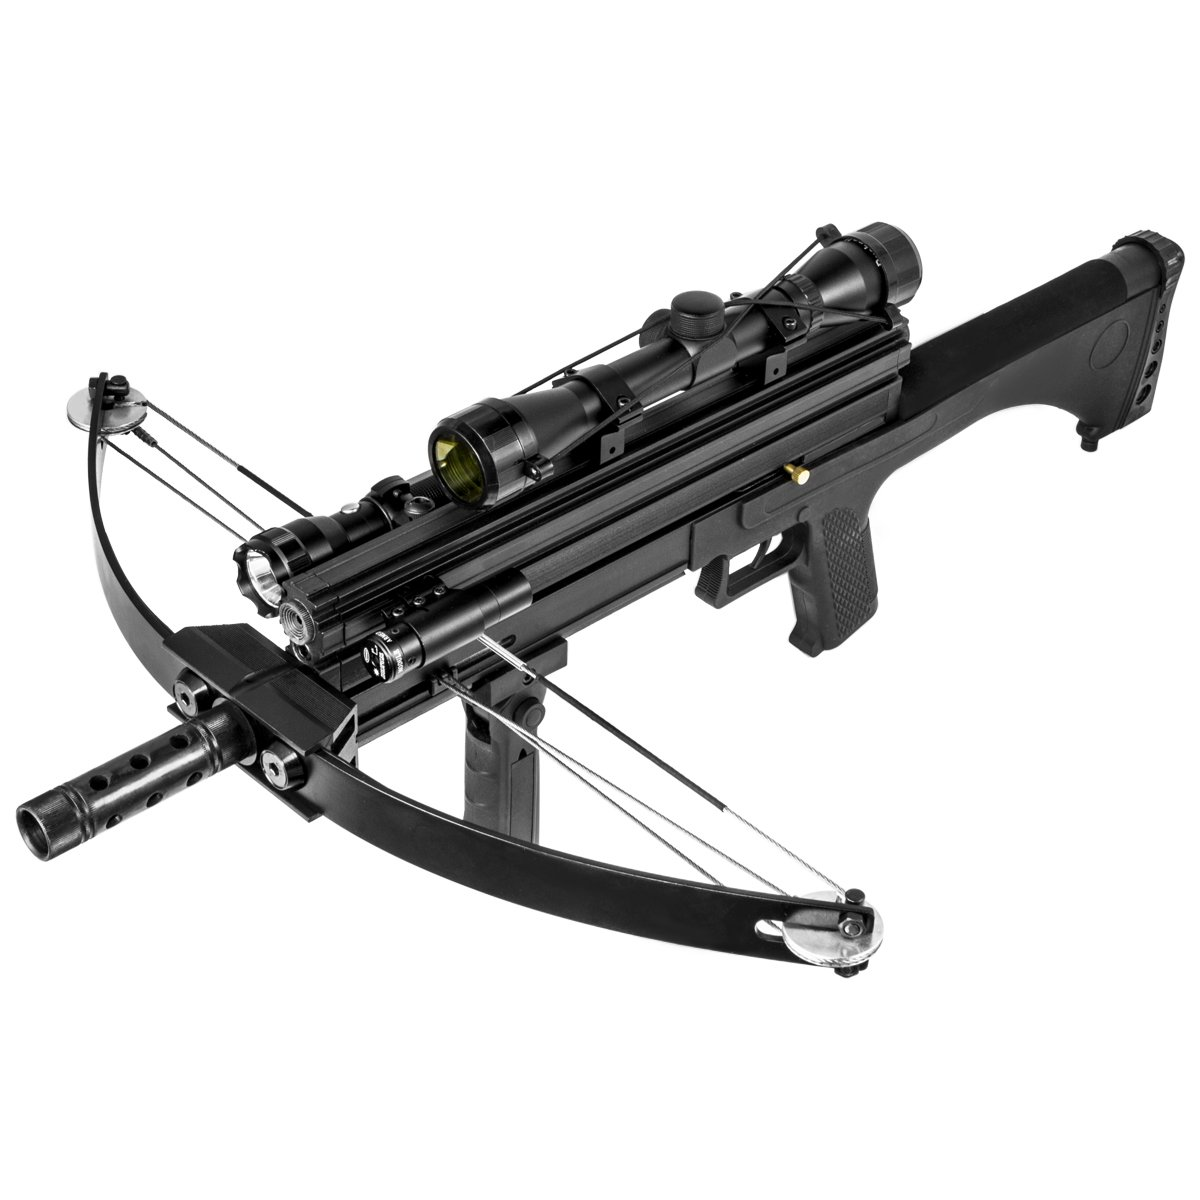 XtremepowerUS Multifunctional Crossbow 80 lbs 160 fps Hunting Equipment 200 Magazine Capacity by XtremepowerUS (Image #3)